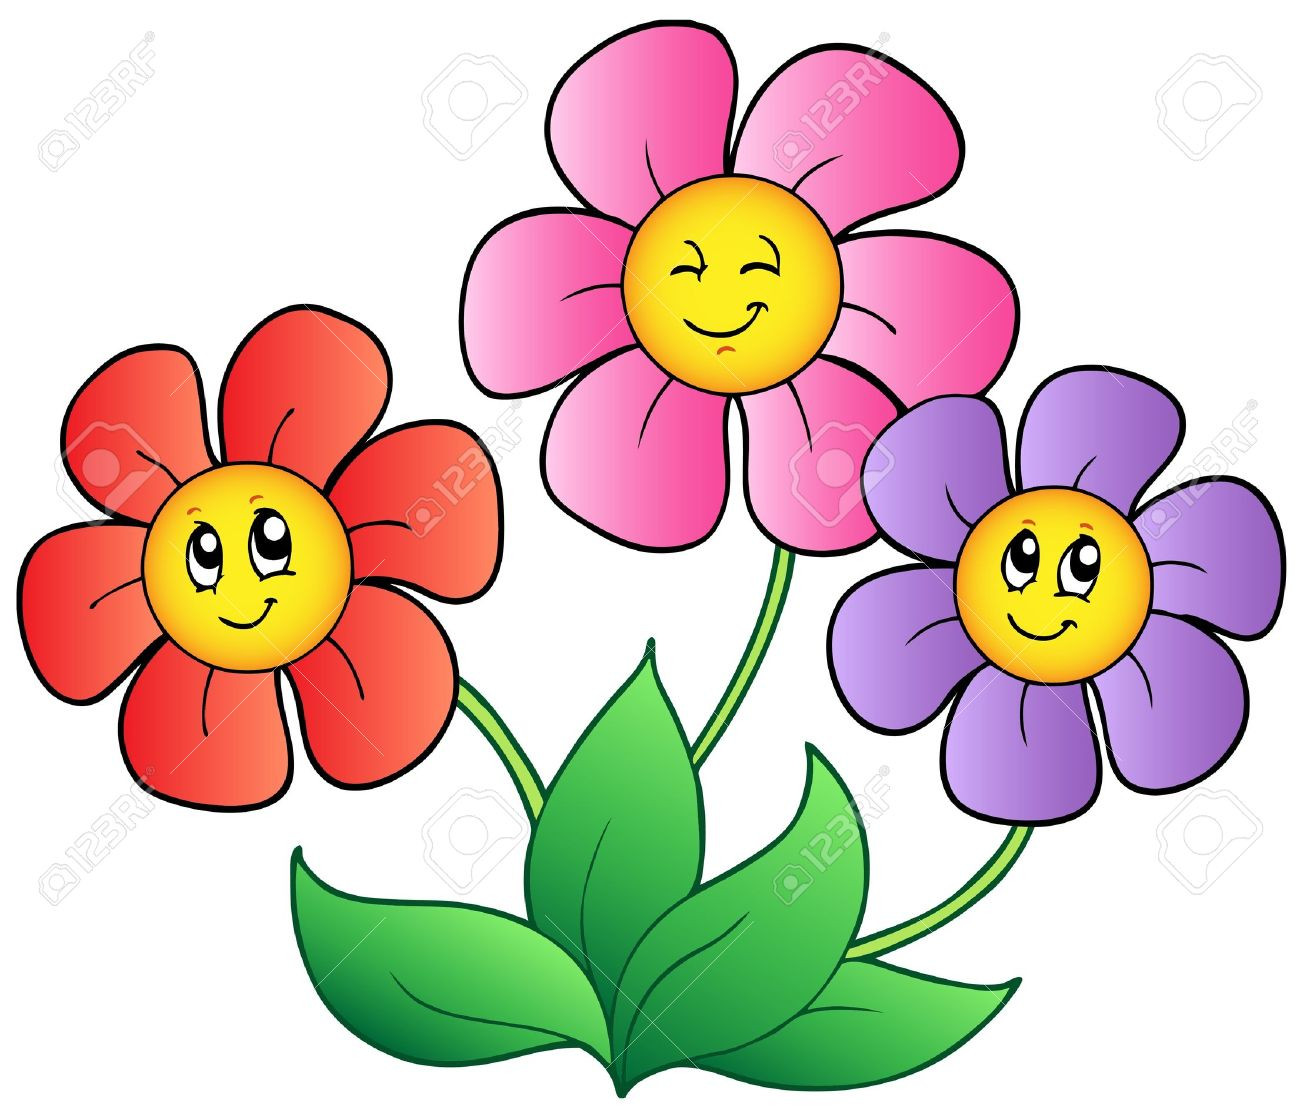 1300x1115 Free Flower Cartoon Images Download Clip Art On Noticeable Image